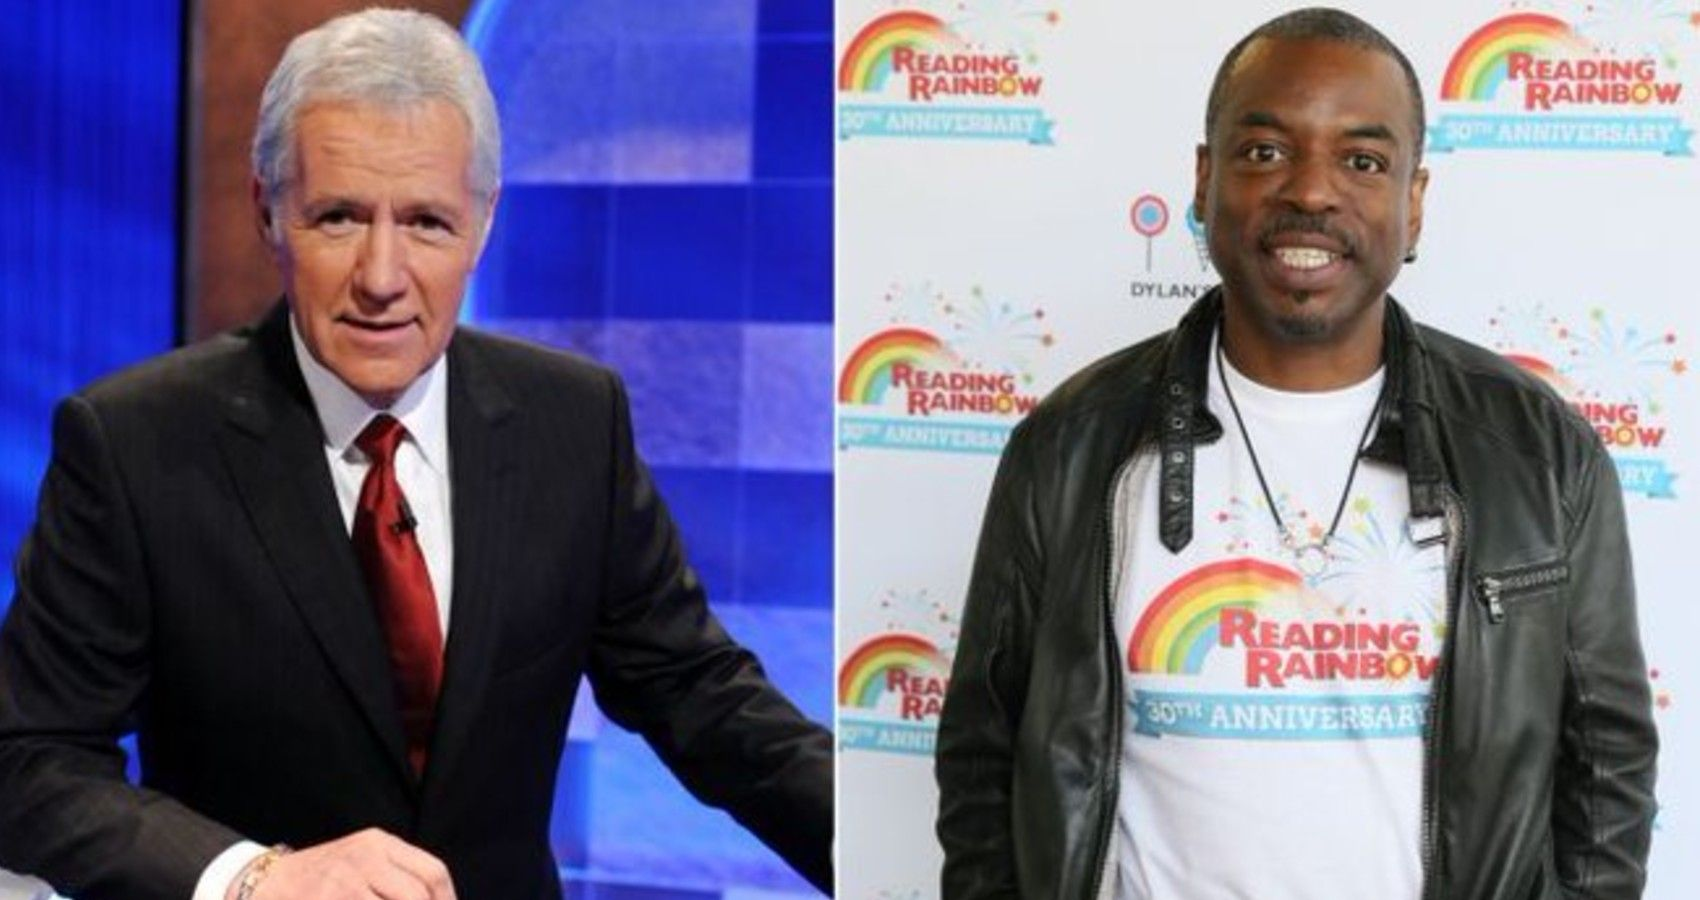 Petition For Reading Rainbow Host To Replace Alex Trebek